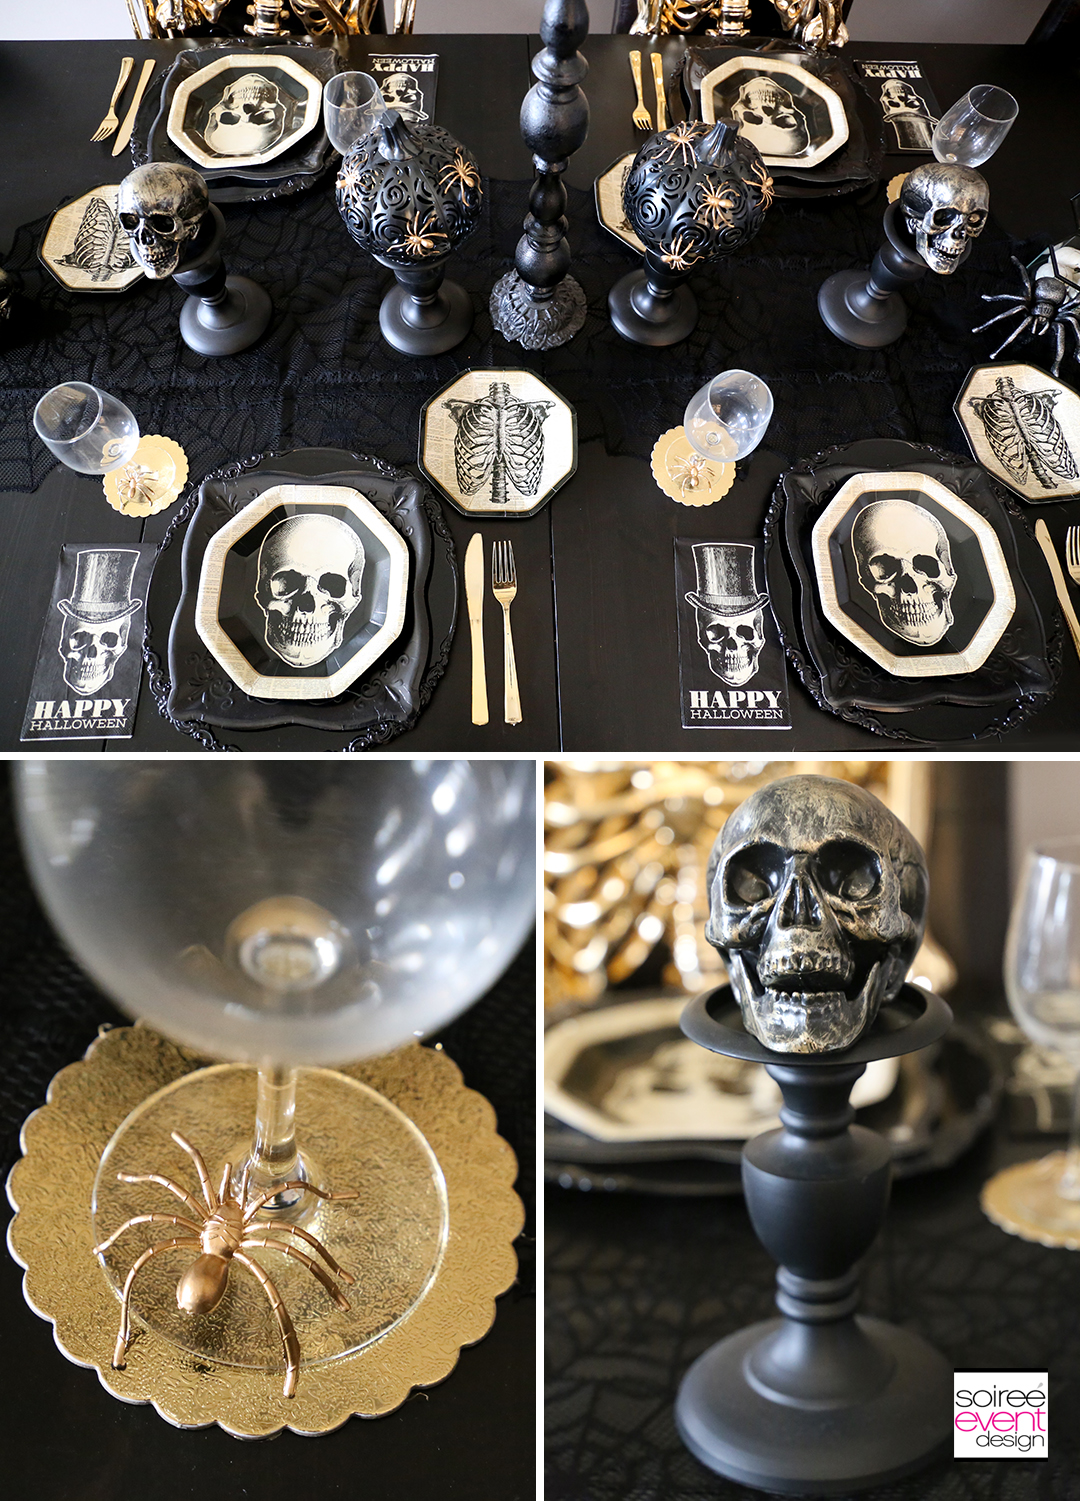 Black and Gold Halloween Decorating Ideas - Tablescape